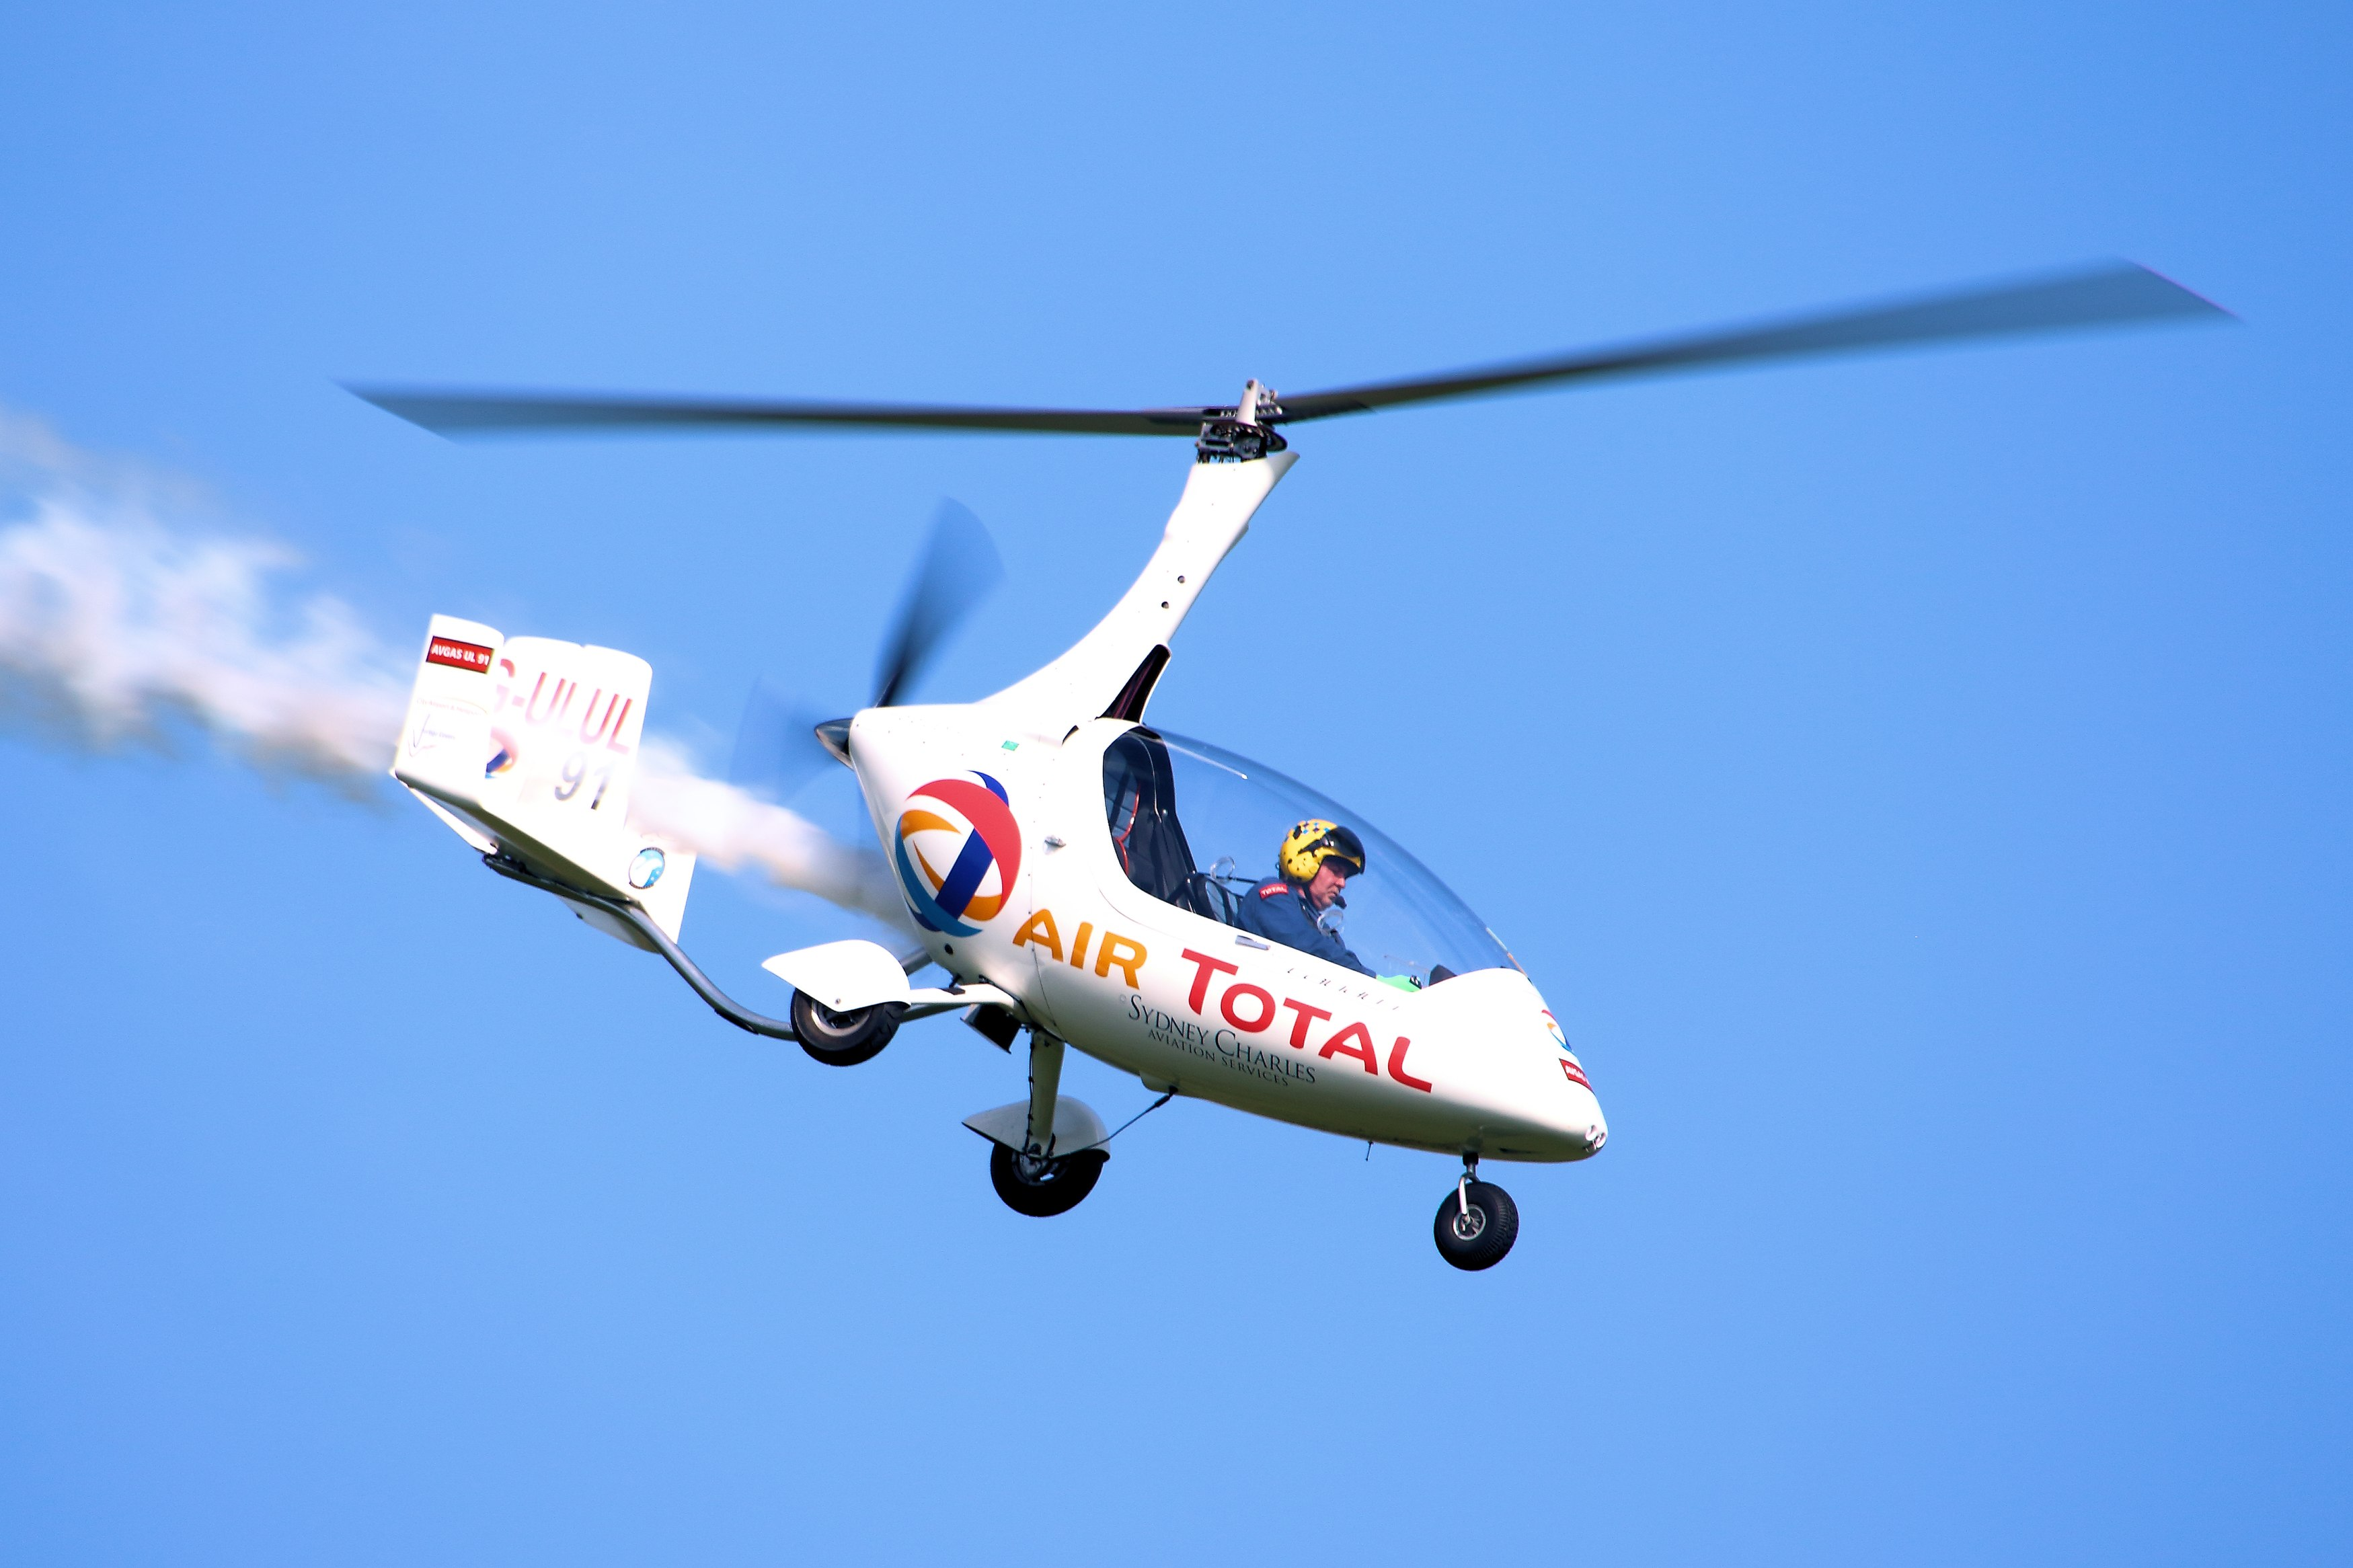 Autogyro - The complete information and online sale with